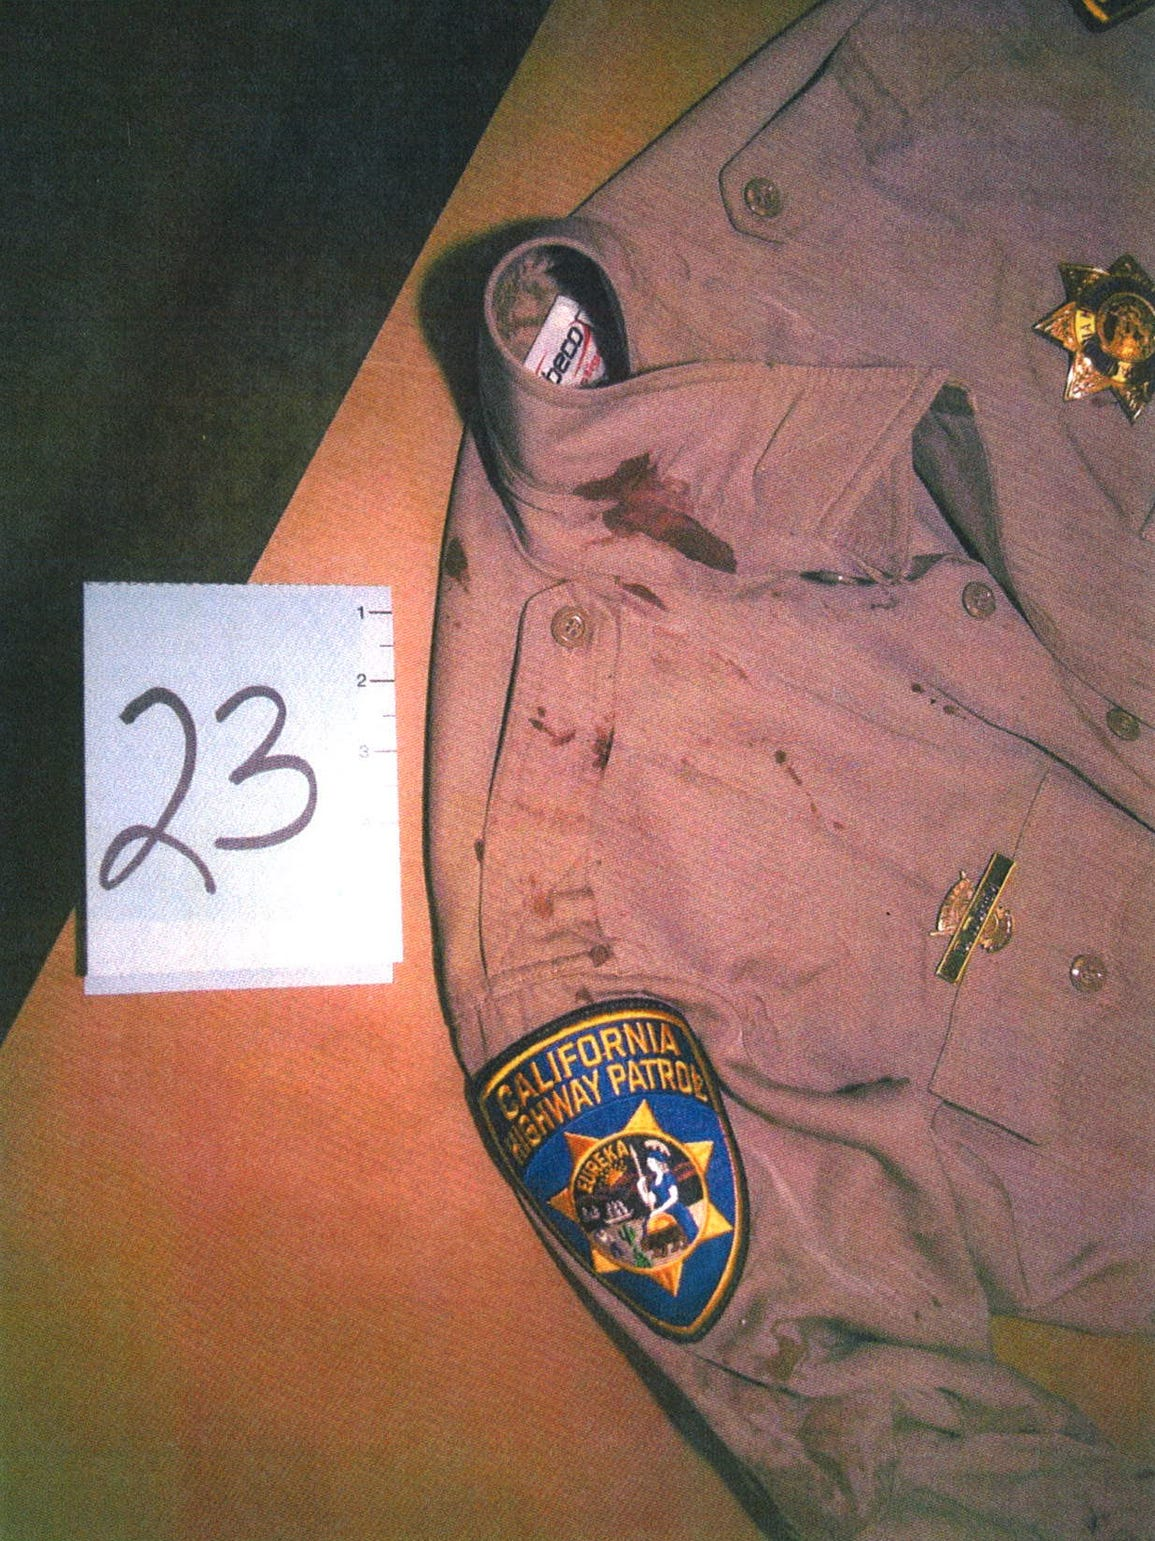 Officer Dane Norem's bloody uniform is photographed